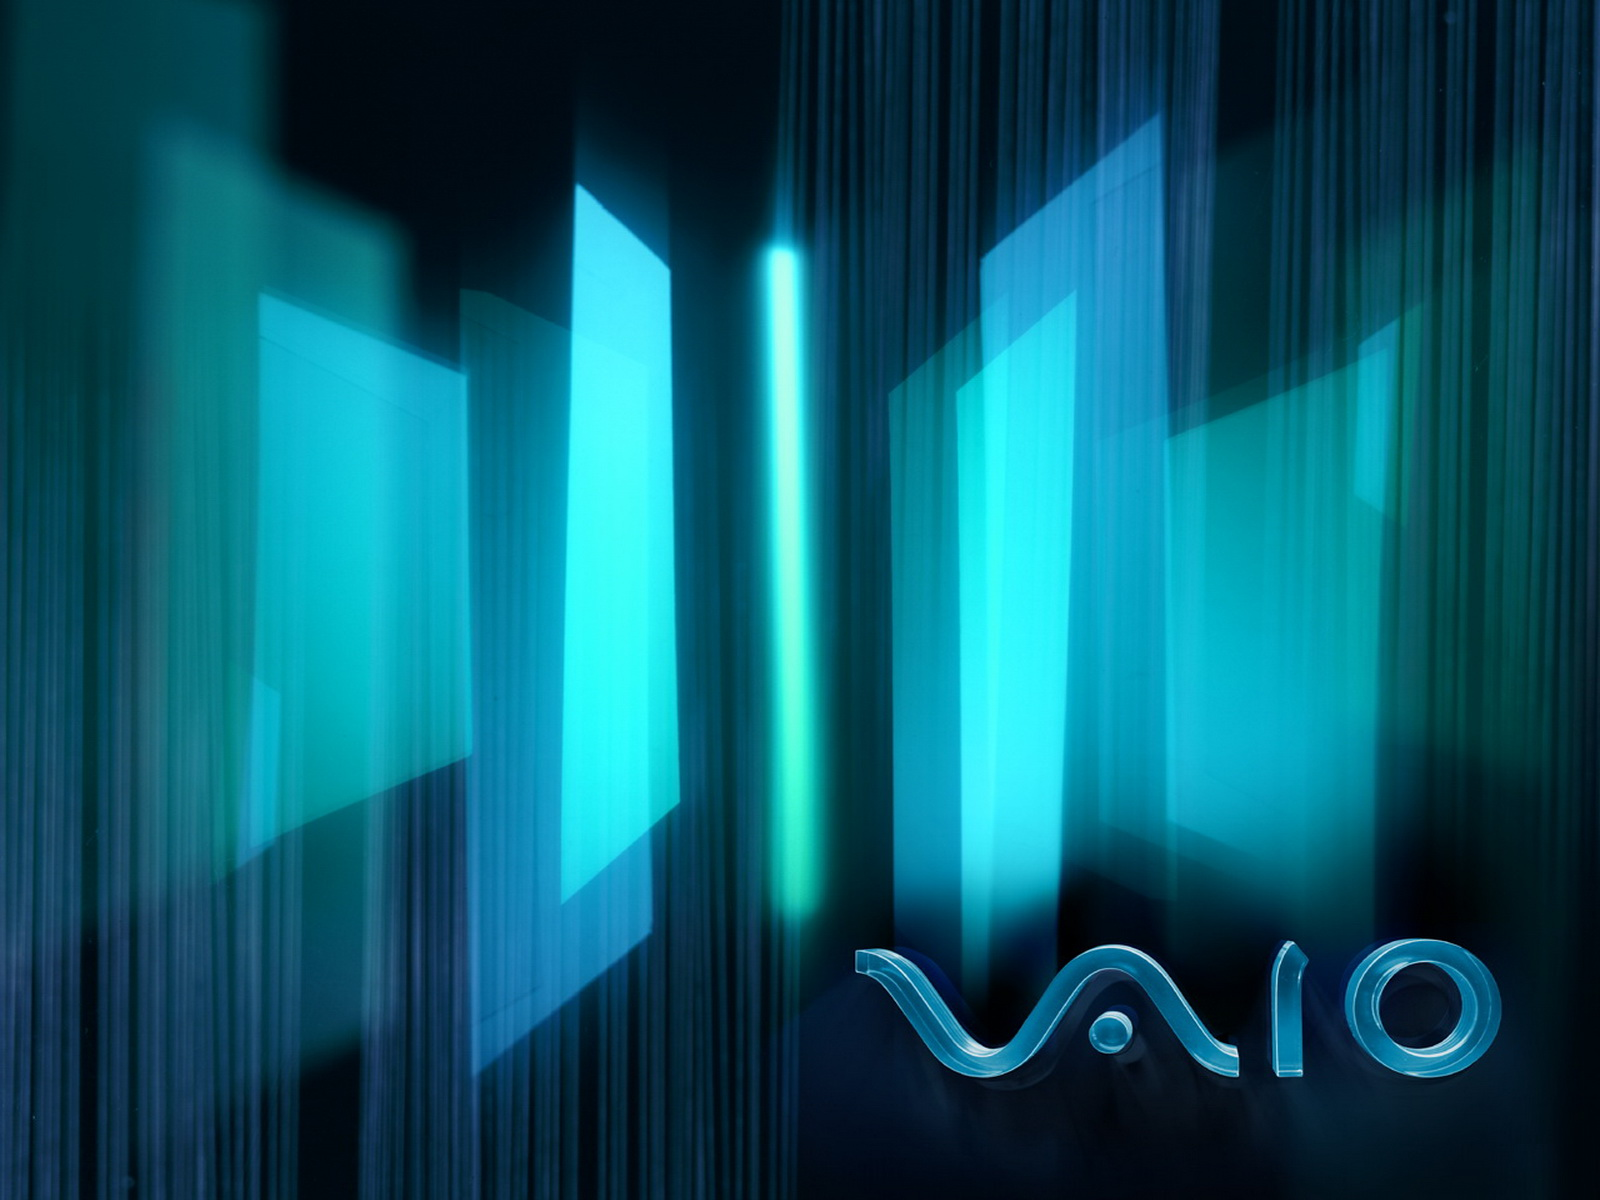 Sony Vaio Wallpaper HD 10